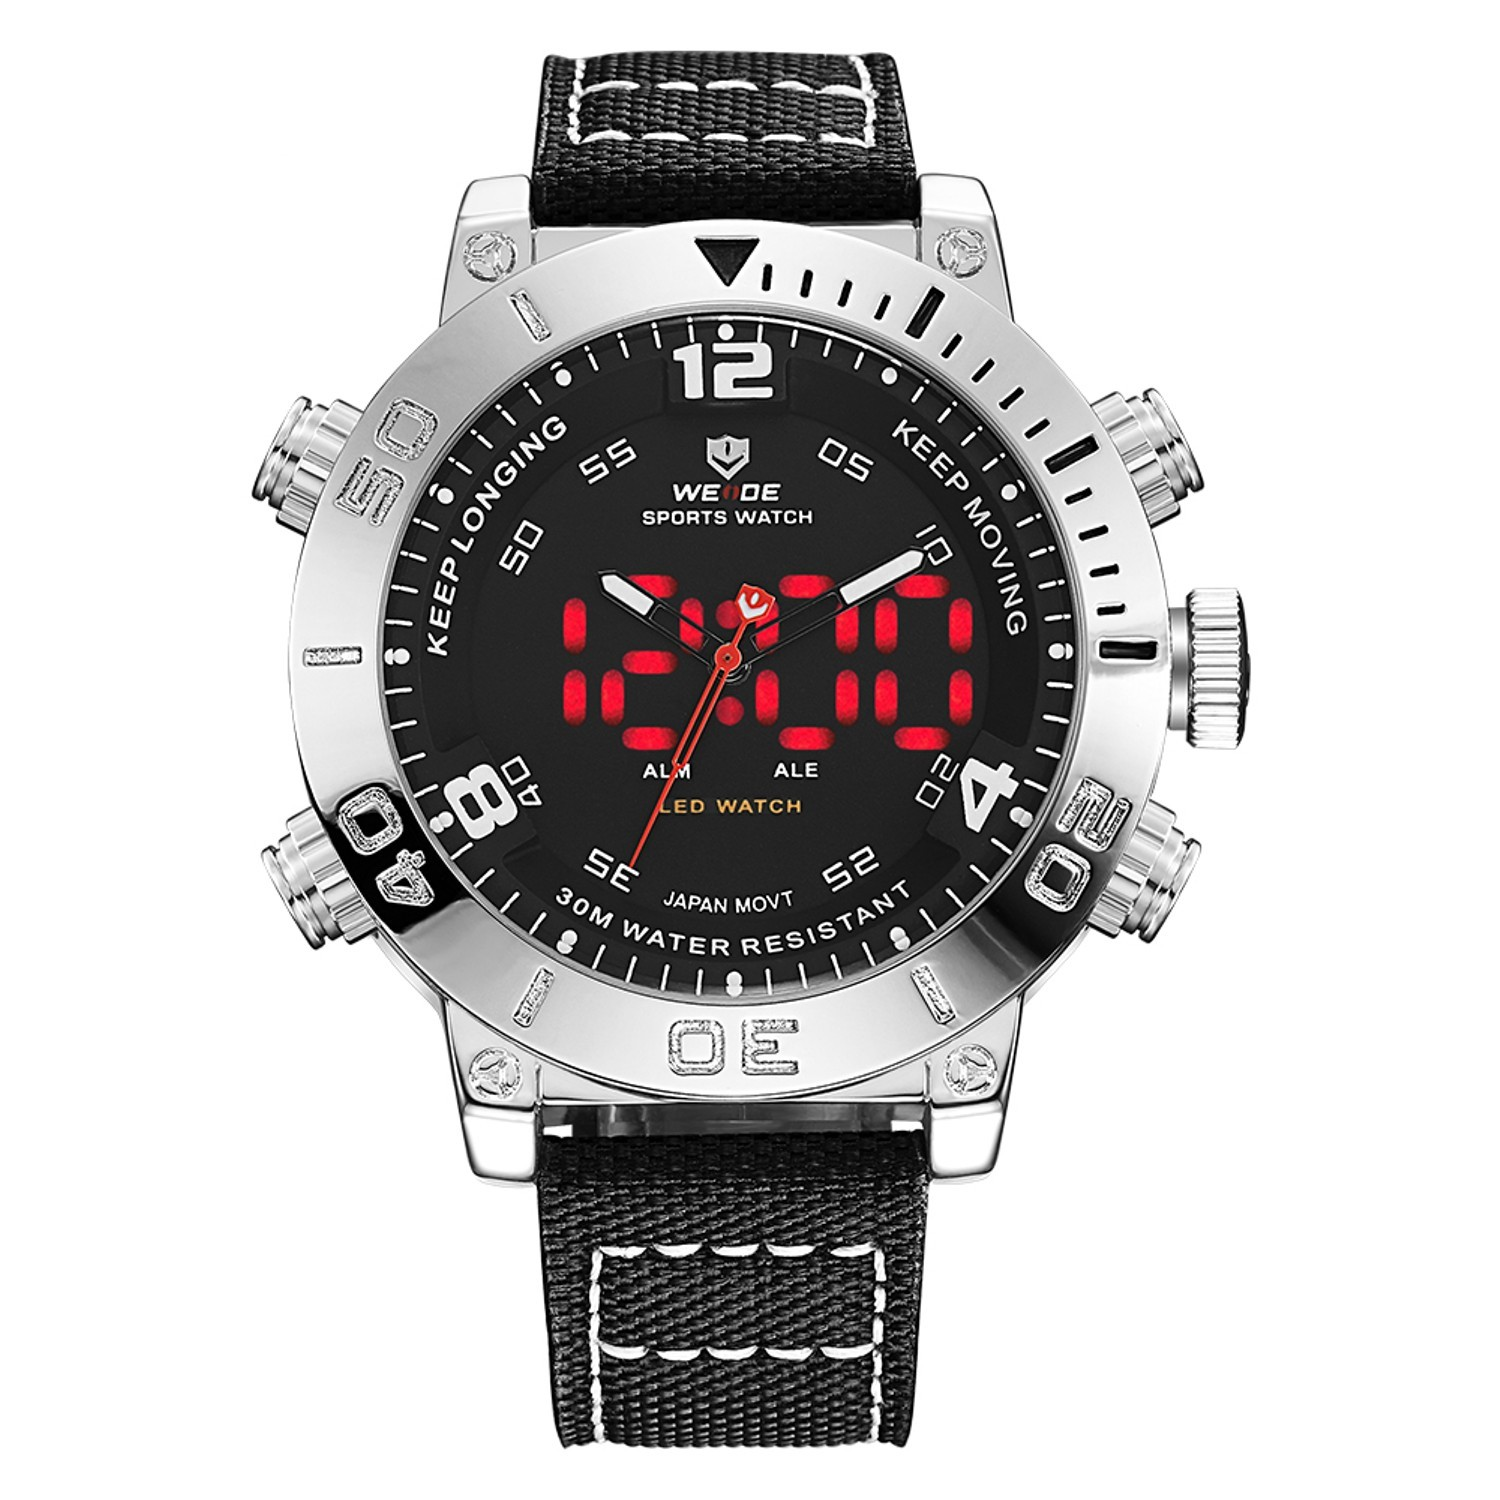 WEIDE-Luxury-Brand-Watch-Men-Nylon-Band-Quartz-Watch-Black-White-Digital-LED-Outdoor-Military-Watch_1500x1500_STRETCH_294.jpg